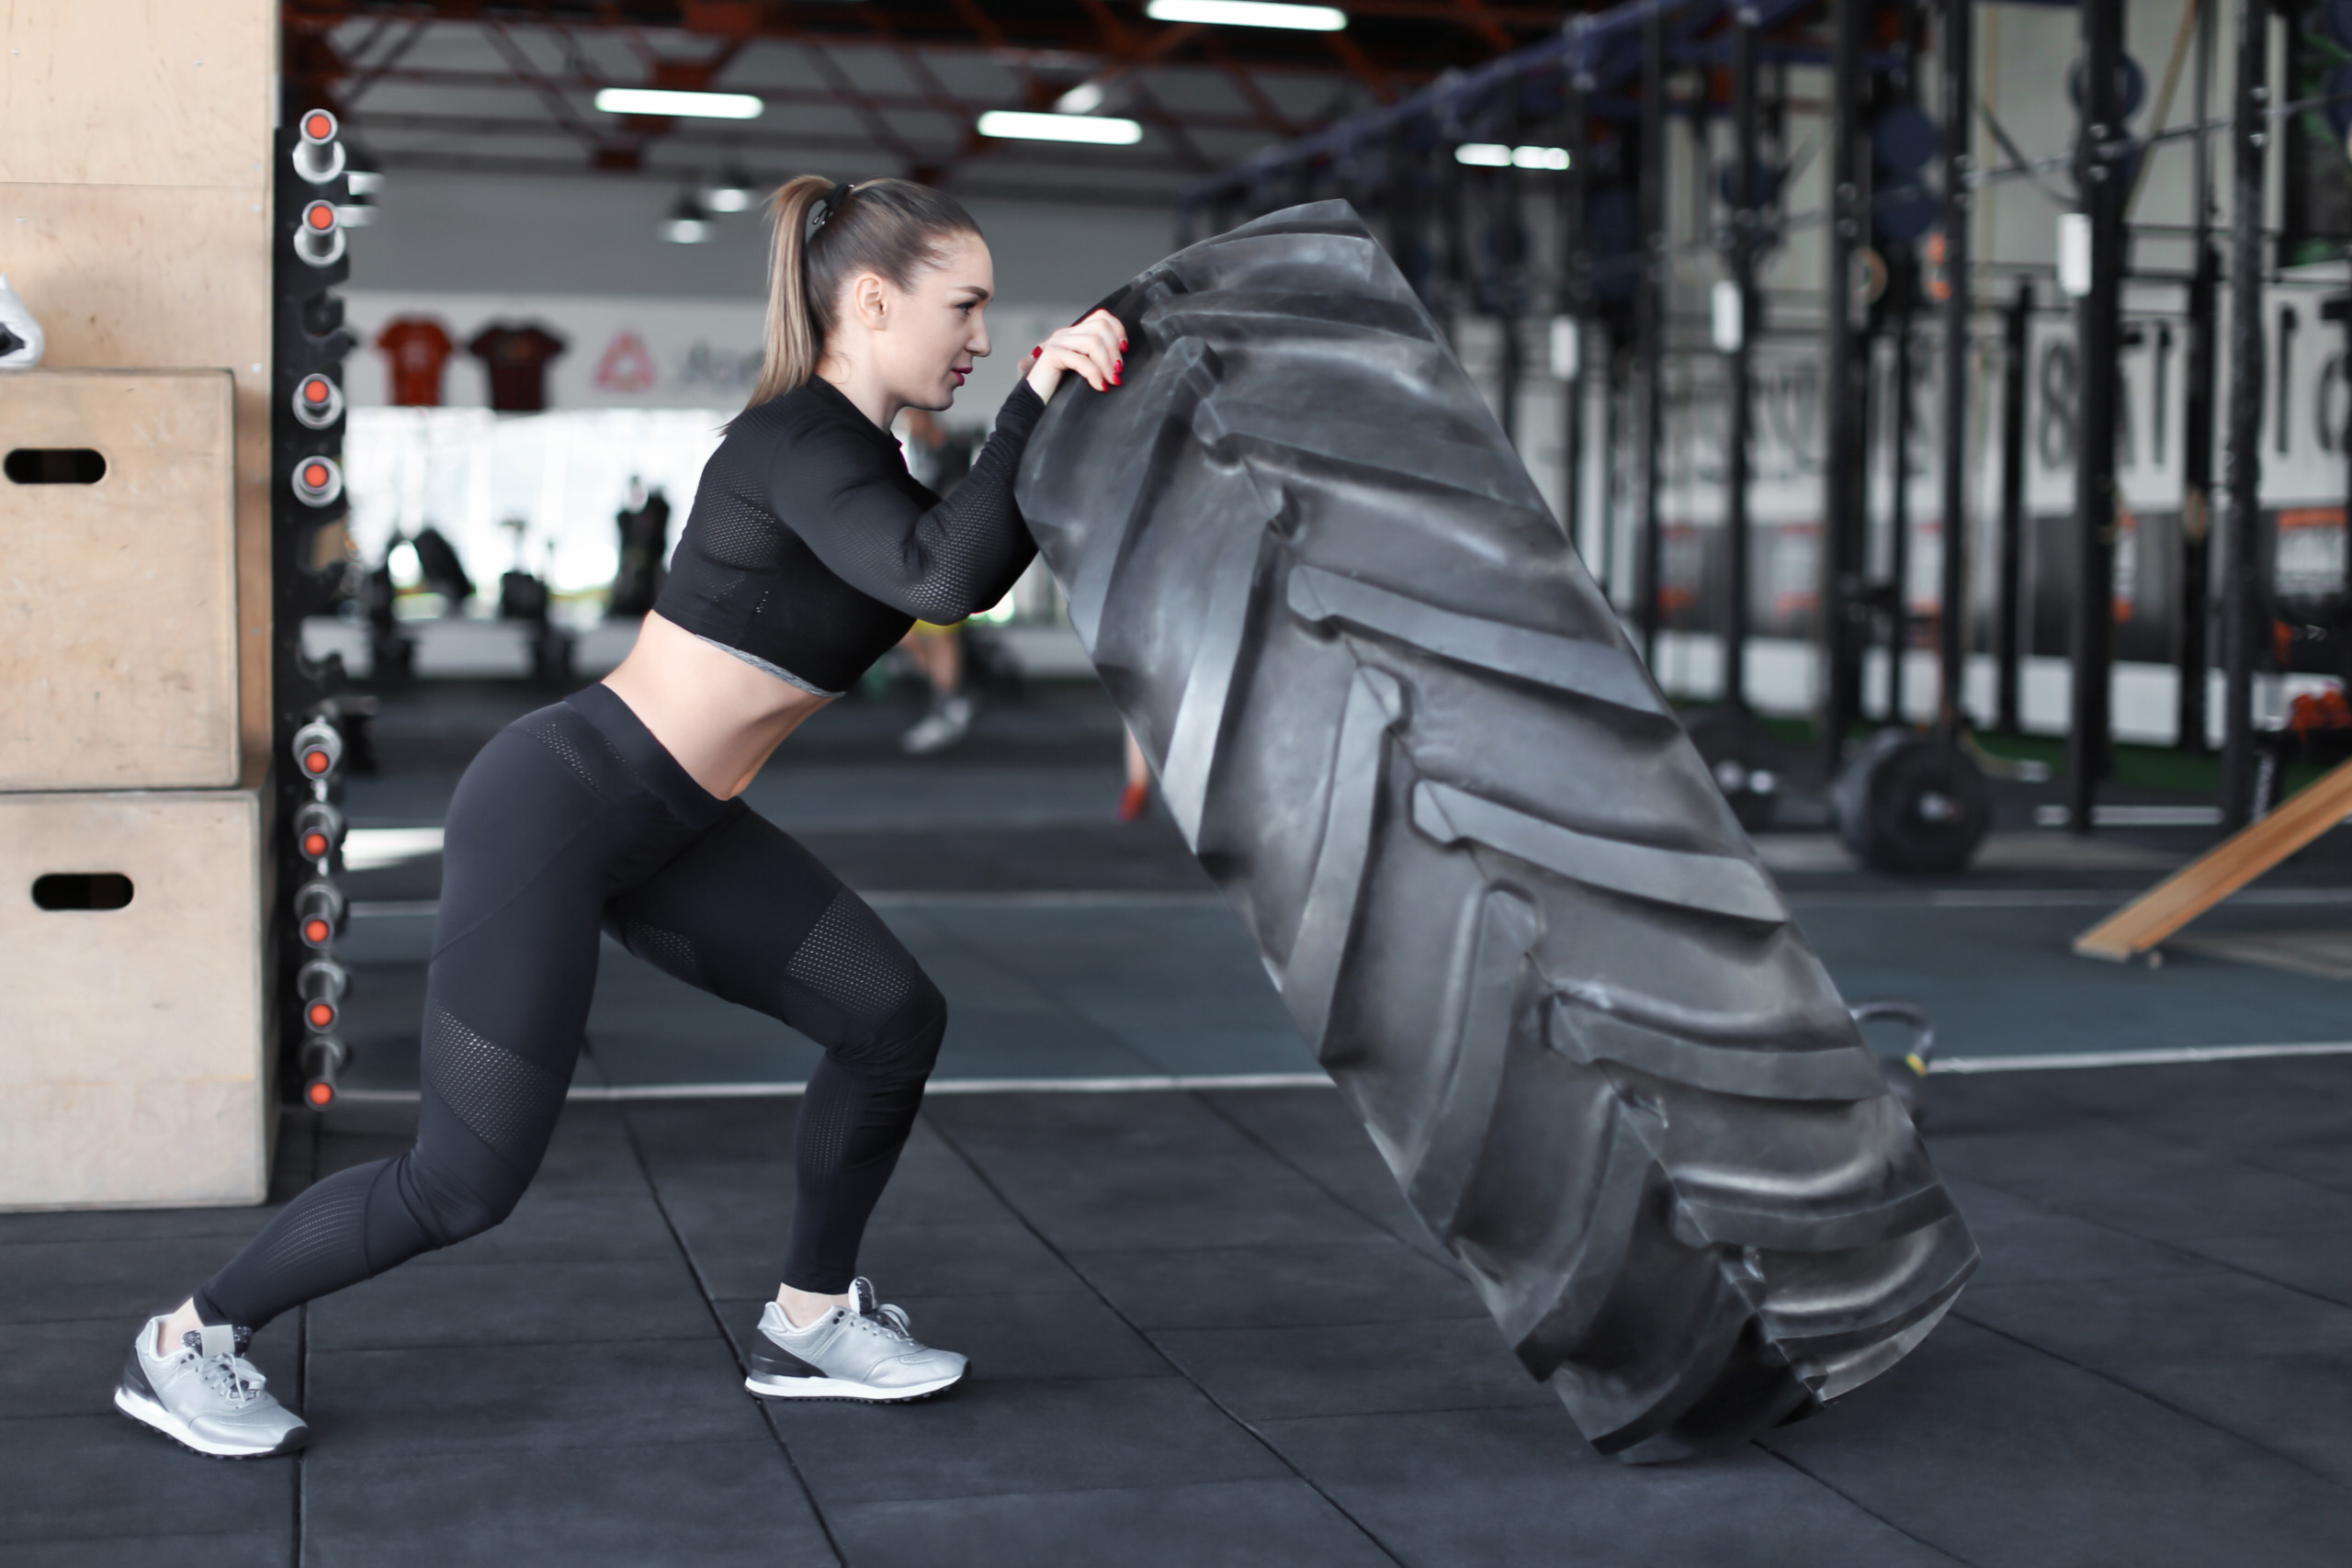 Grueling Entire Body Workout: Uphill Tire Flipping